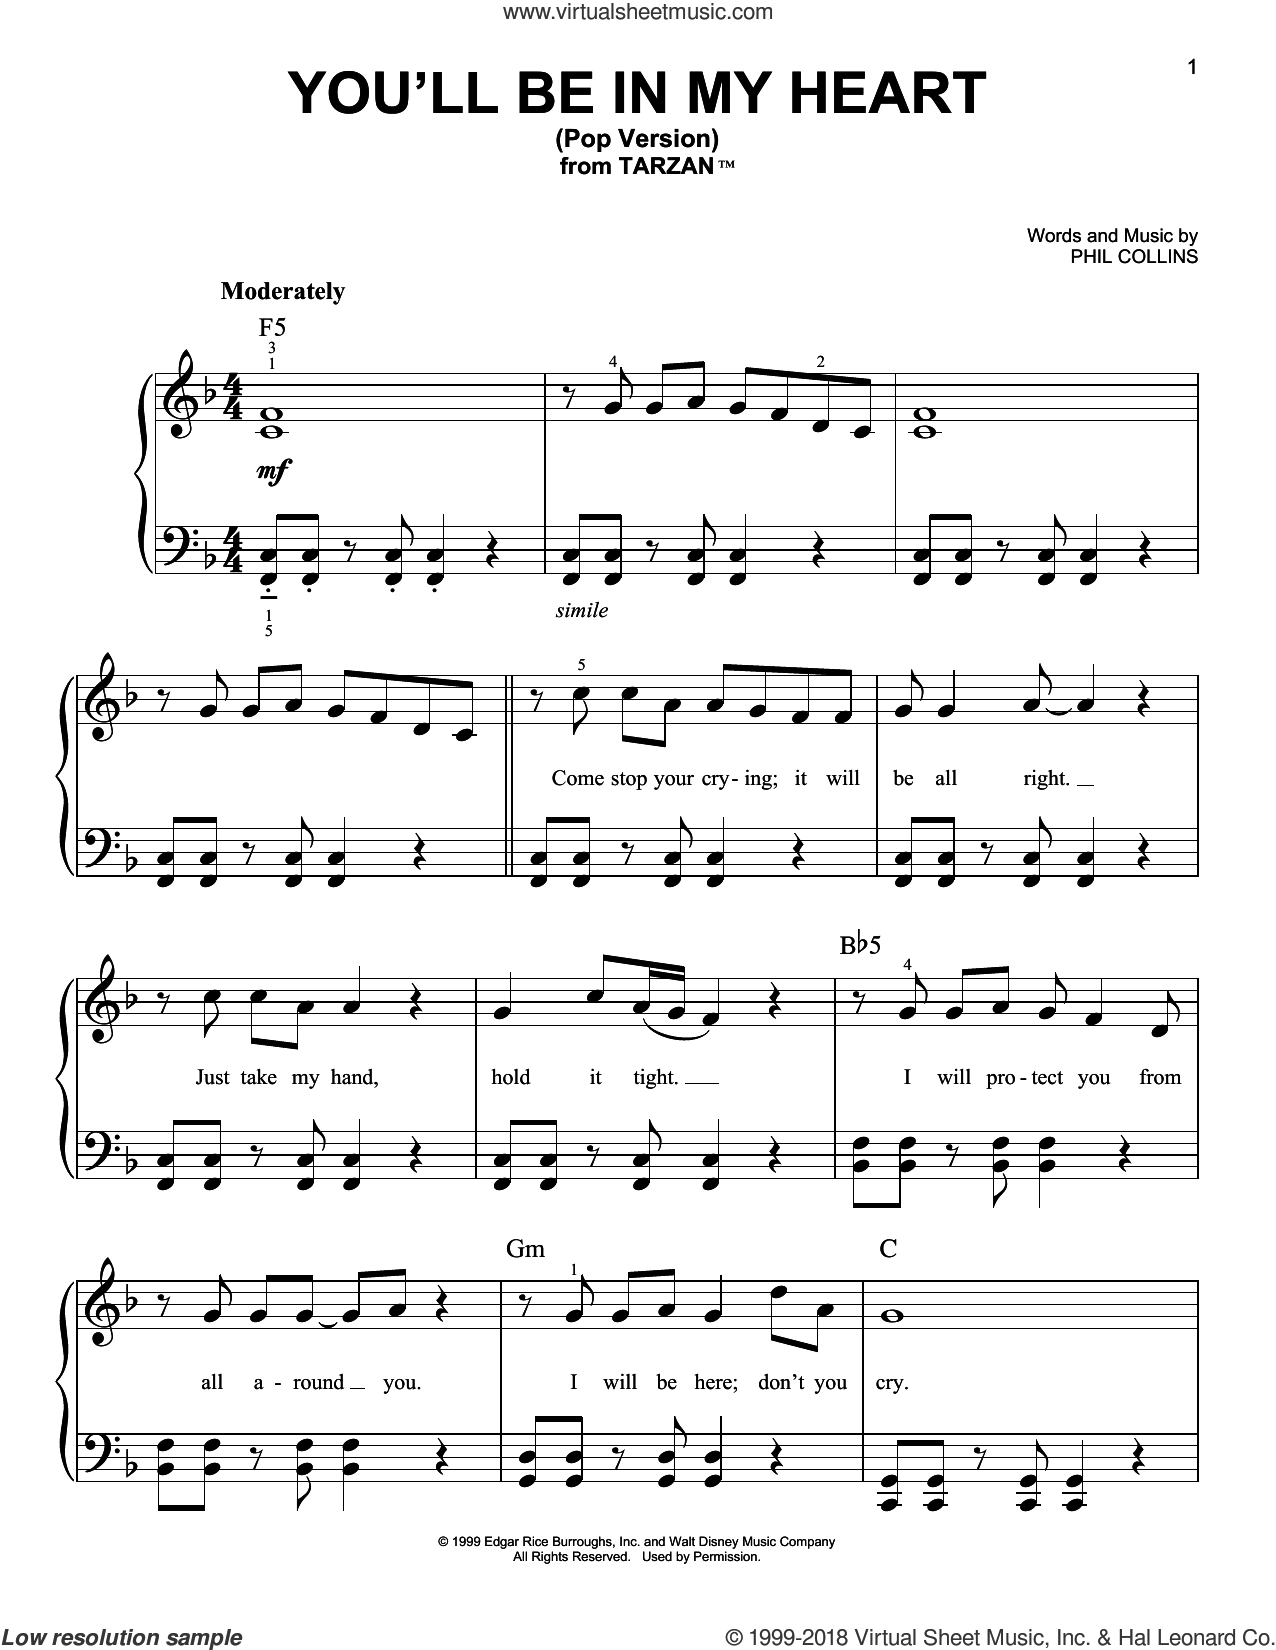 You'll Be In My Heart (Pop Version) sheet music for piano solo by Phil Collins, easy skill level